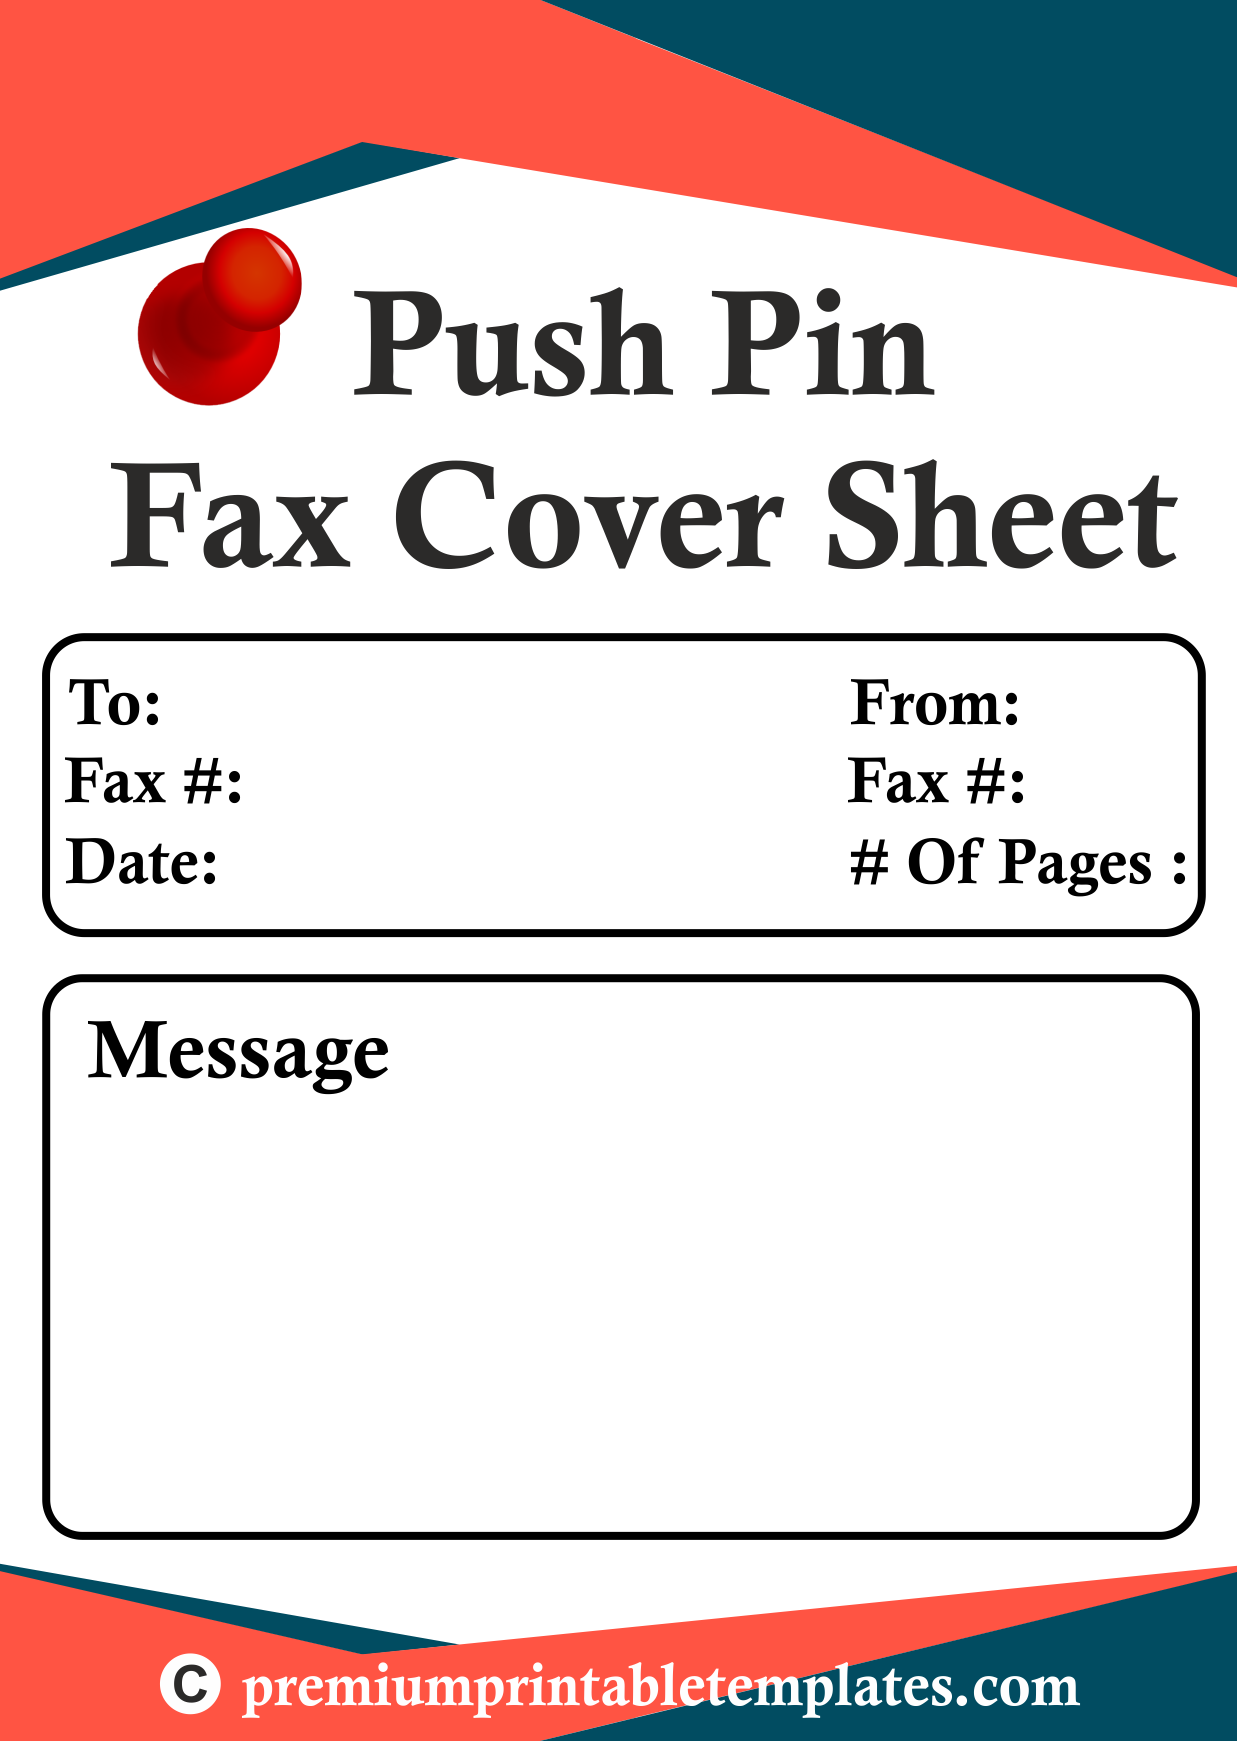 Pushpin Fax Cover Sheet Templates